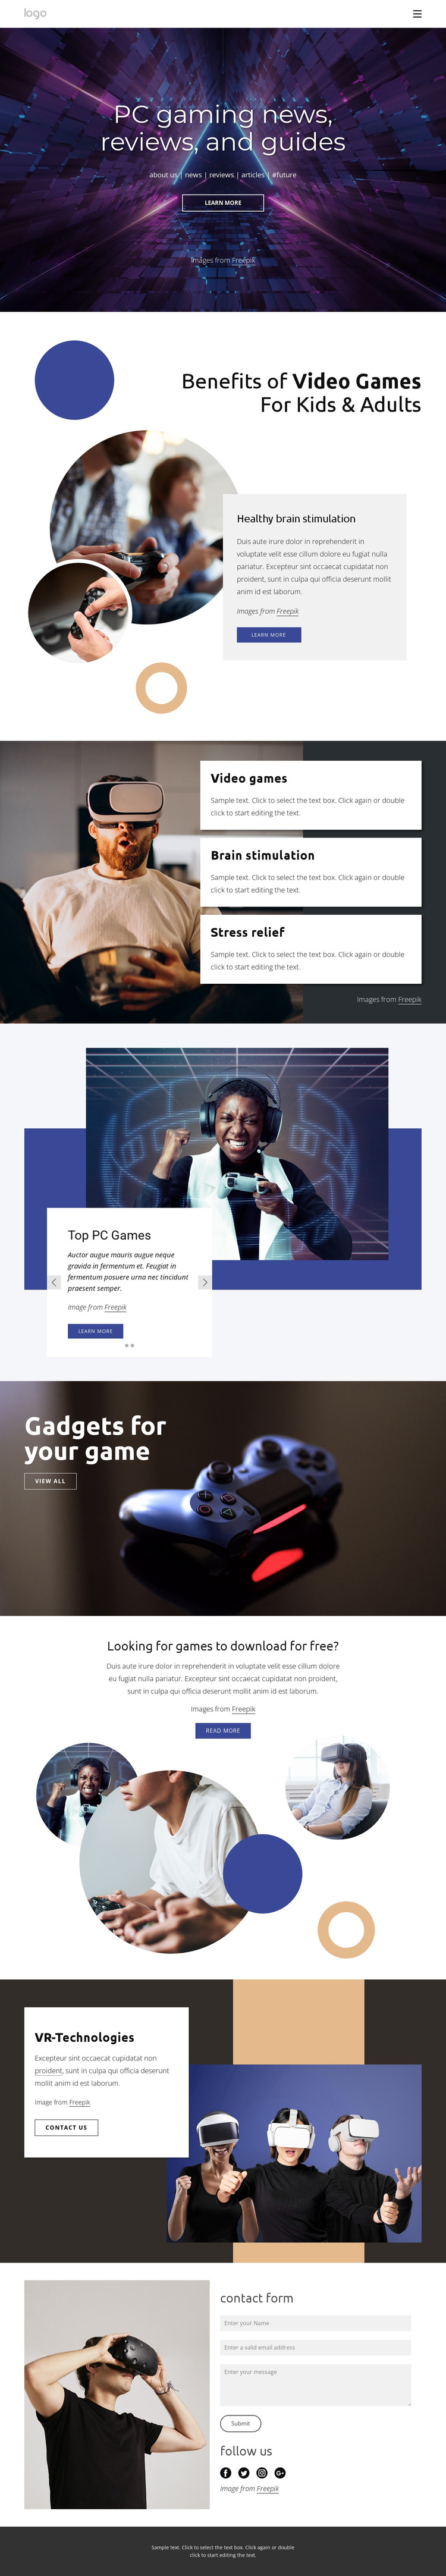 PC gaming news HTML5 Template